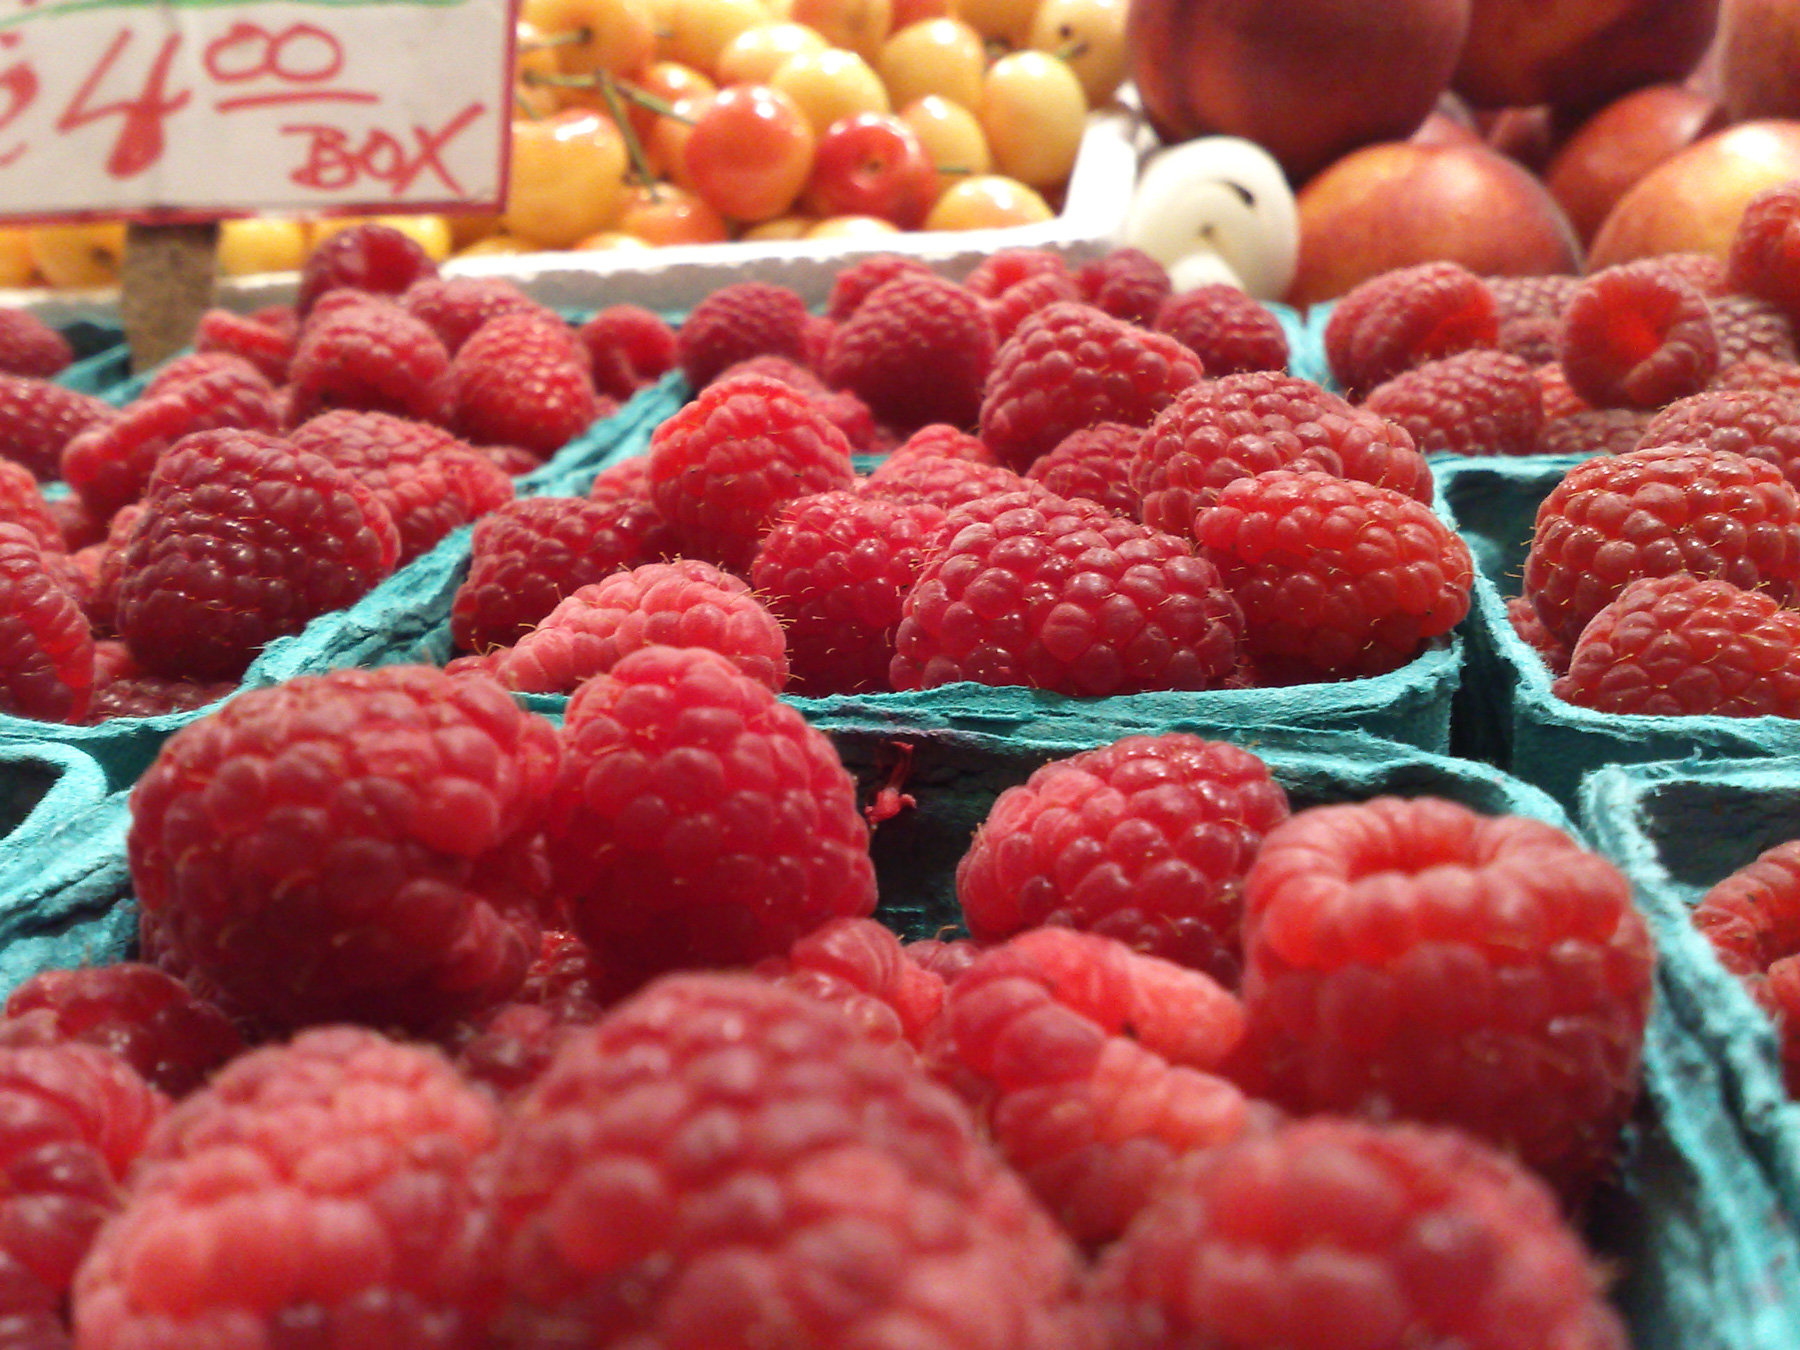 2015-03-11_pike place raspberries.jpg